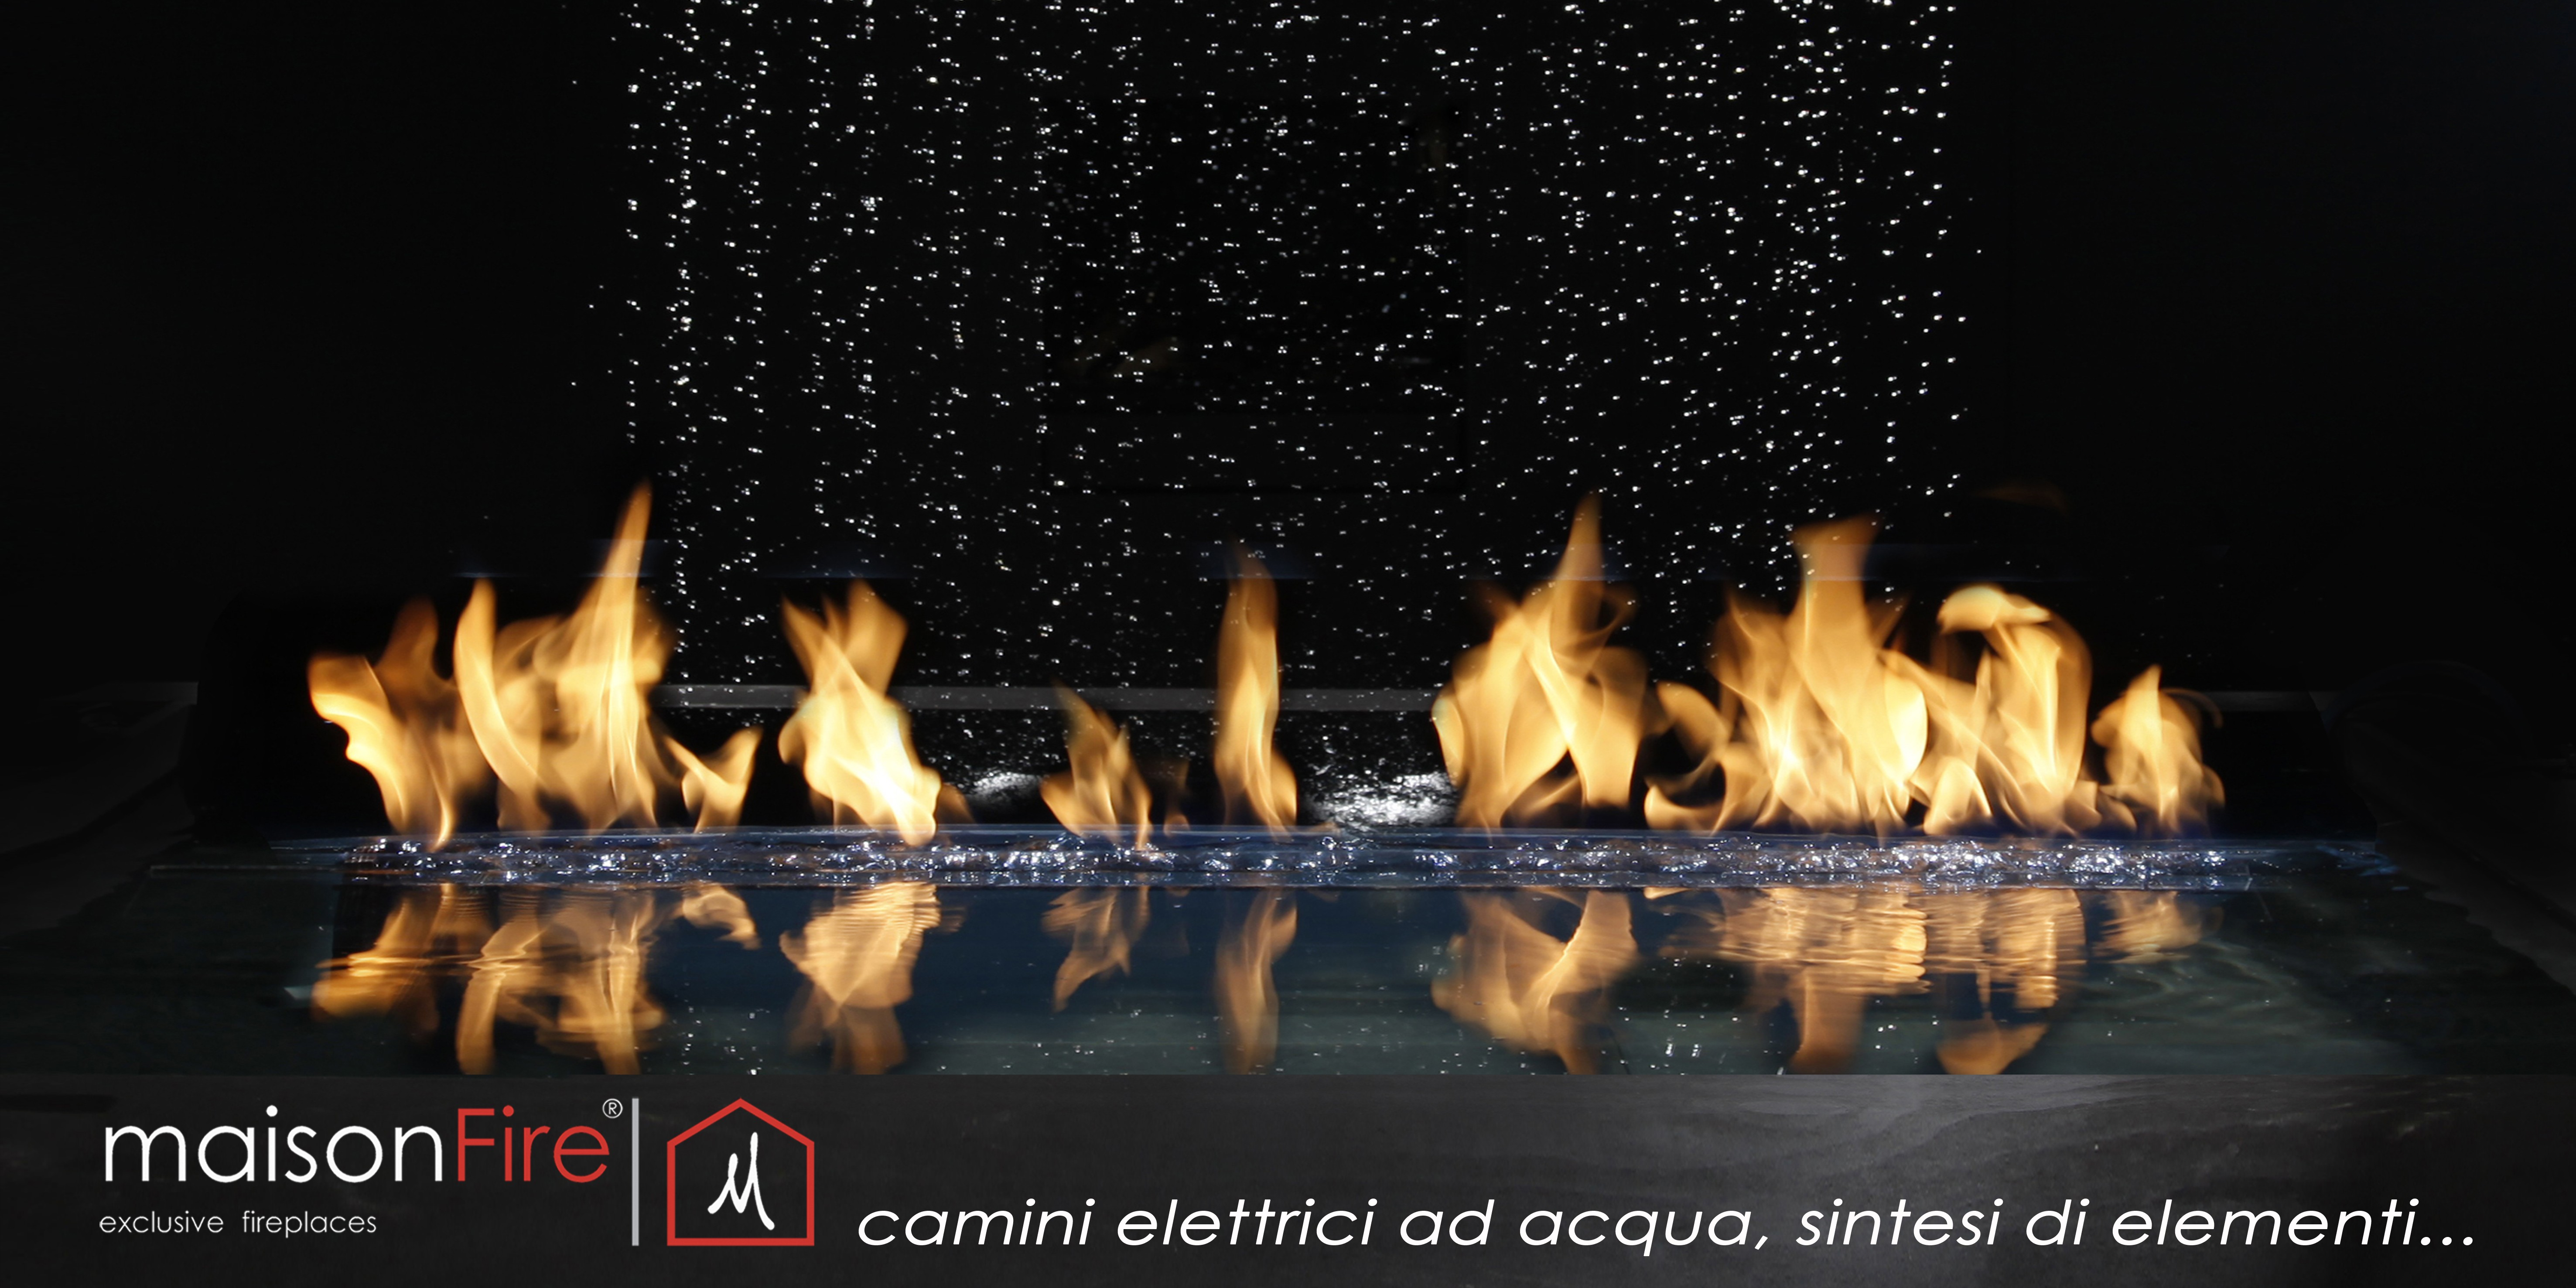 Caminetti Bioetanolo Reggio Emilia maisonfire exclusive fireplaces | linkedin